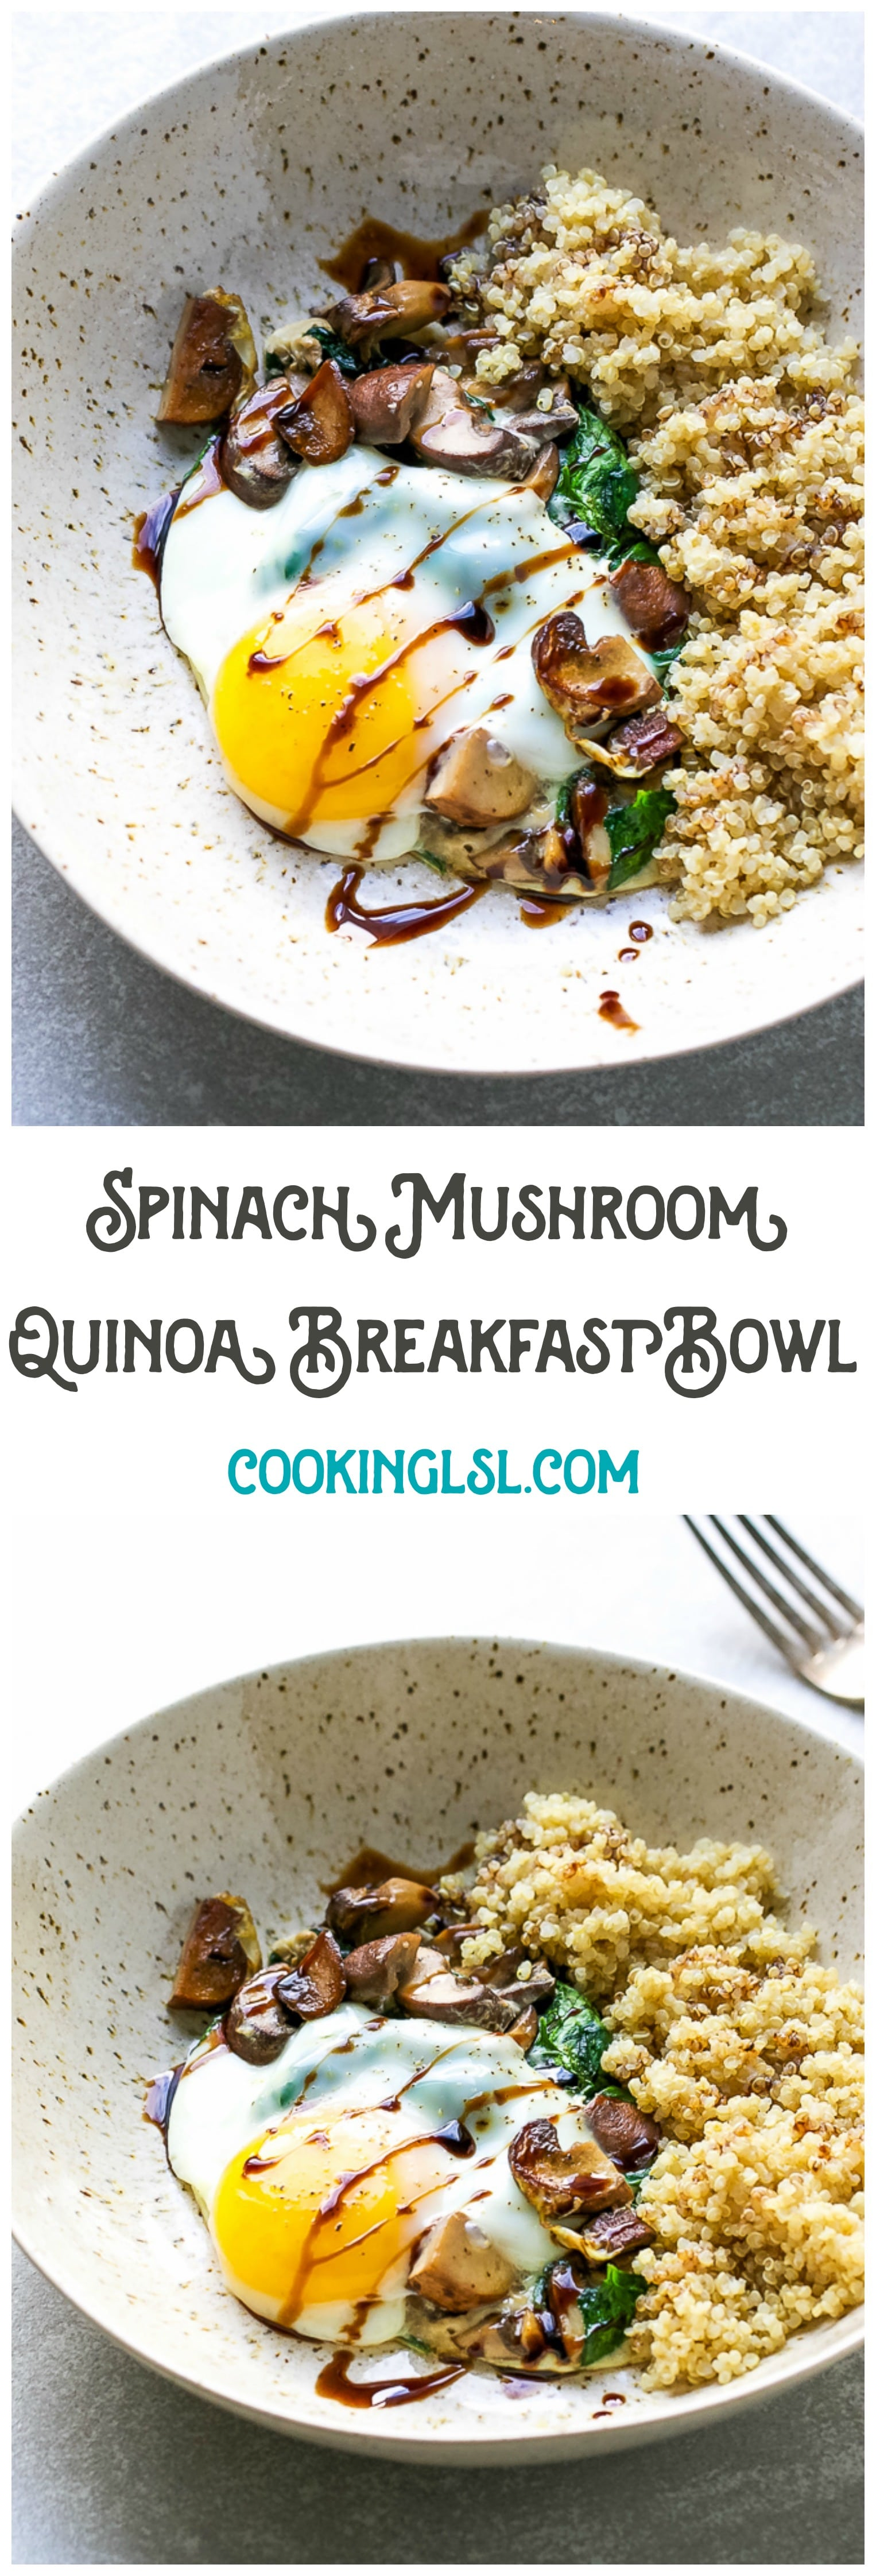 Spinach Mushroom Quinoa Breakfast Bowl Recipe - a breakfast bowl loaded with nutritious and wholesome ingredients.